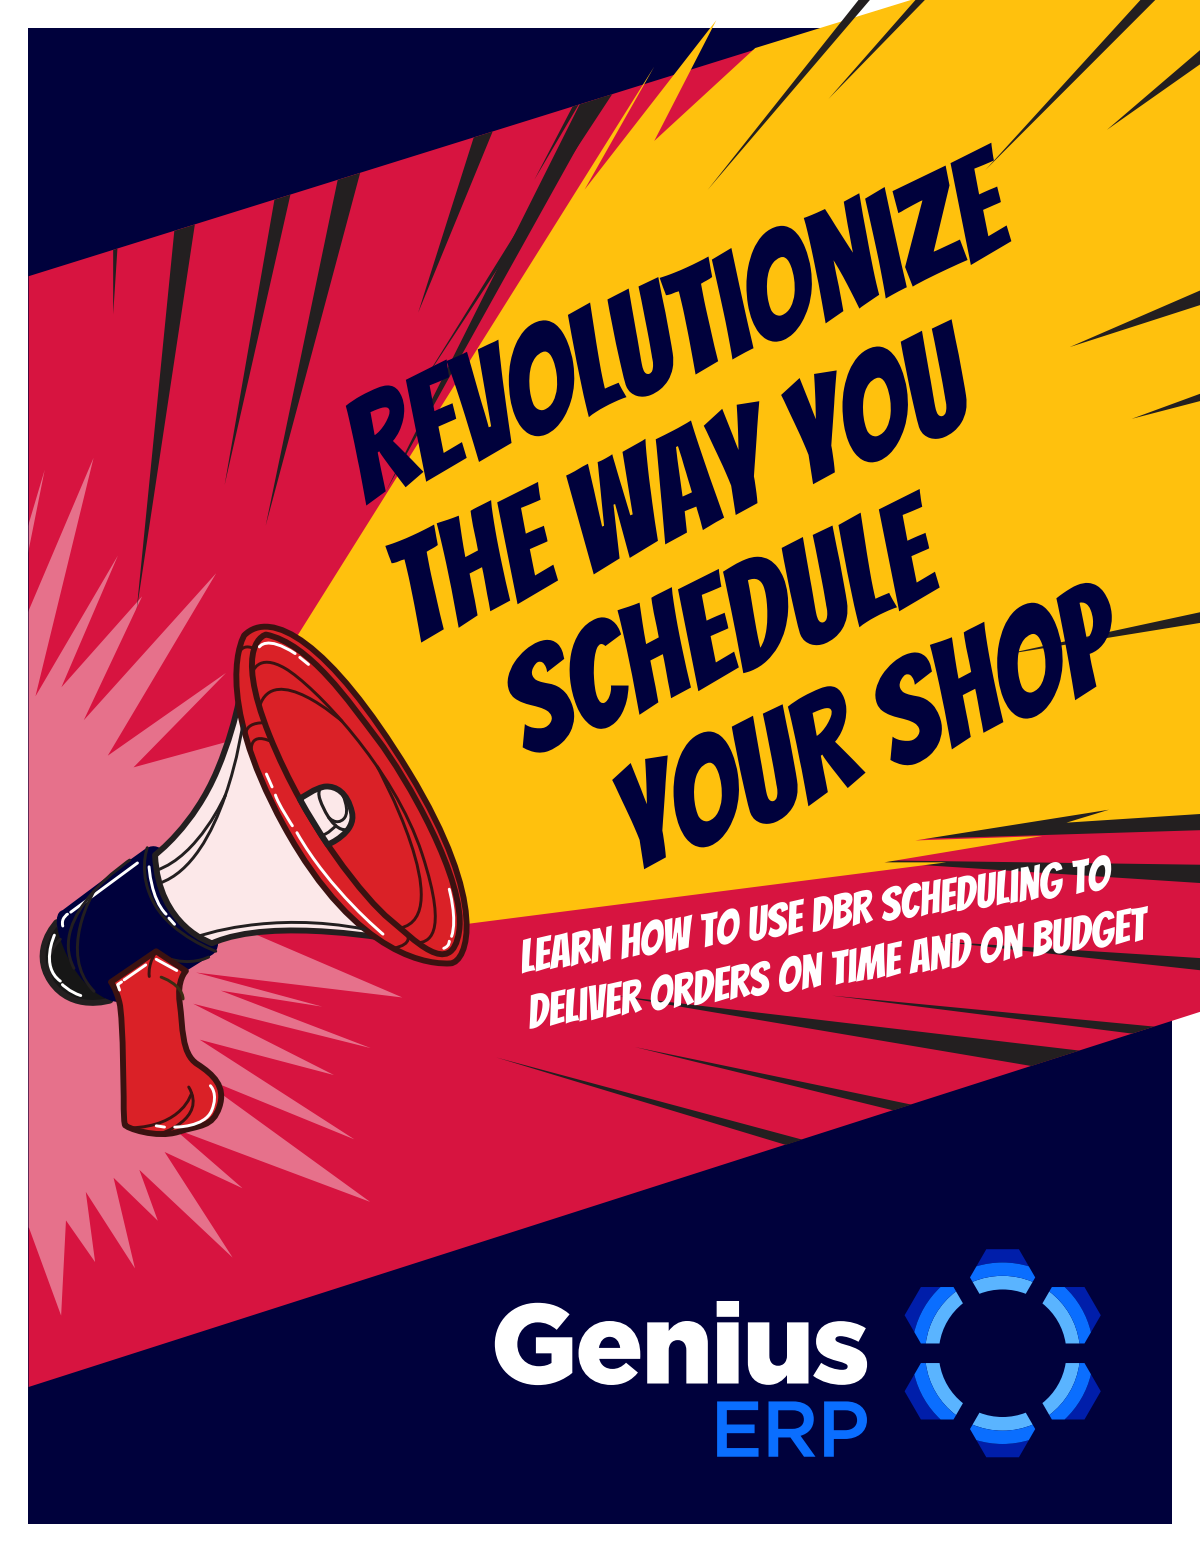 Smart Scheduling Ebook - Comic Book Style